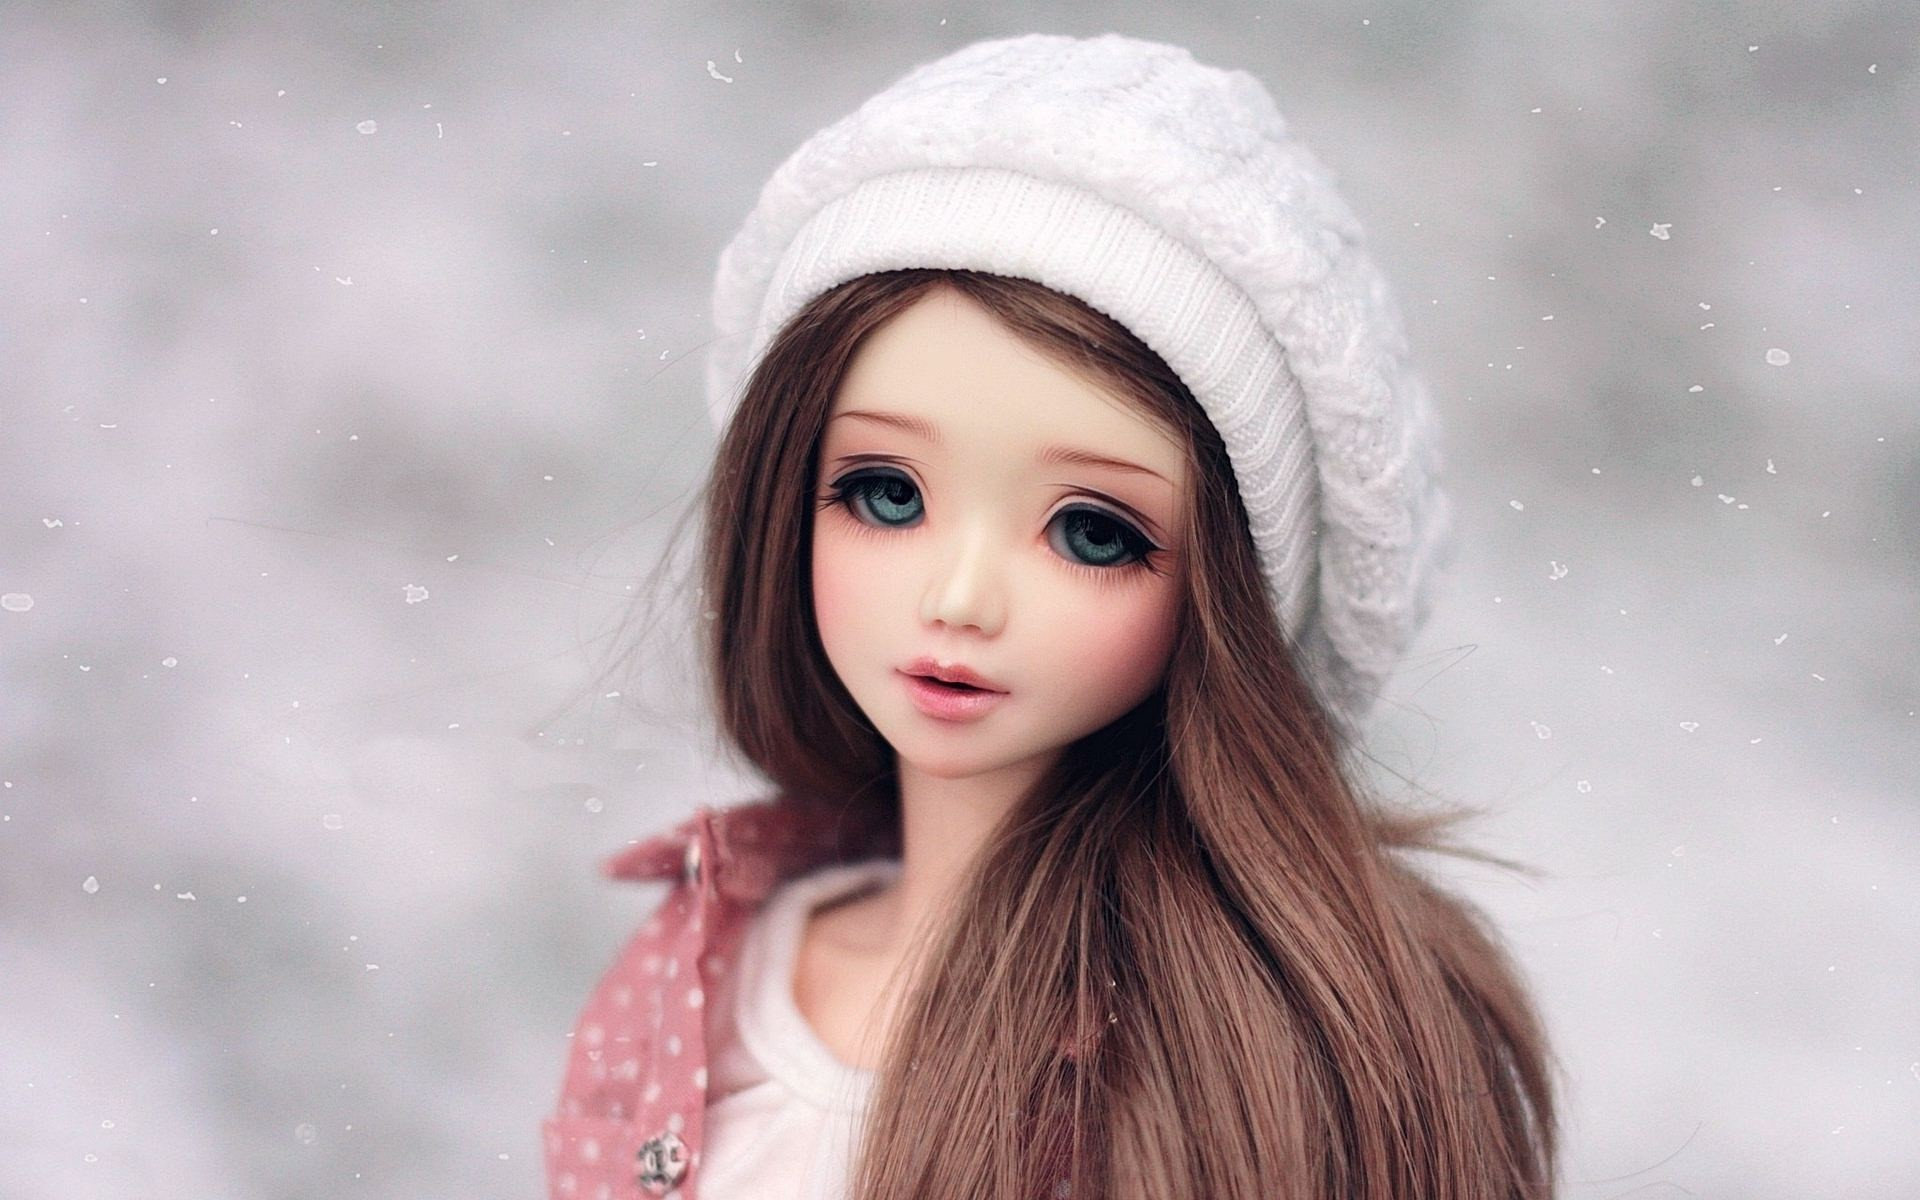 barbie doll. 1920x1200 barbie doll wallpapers for facebook latest collection